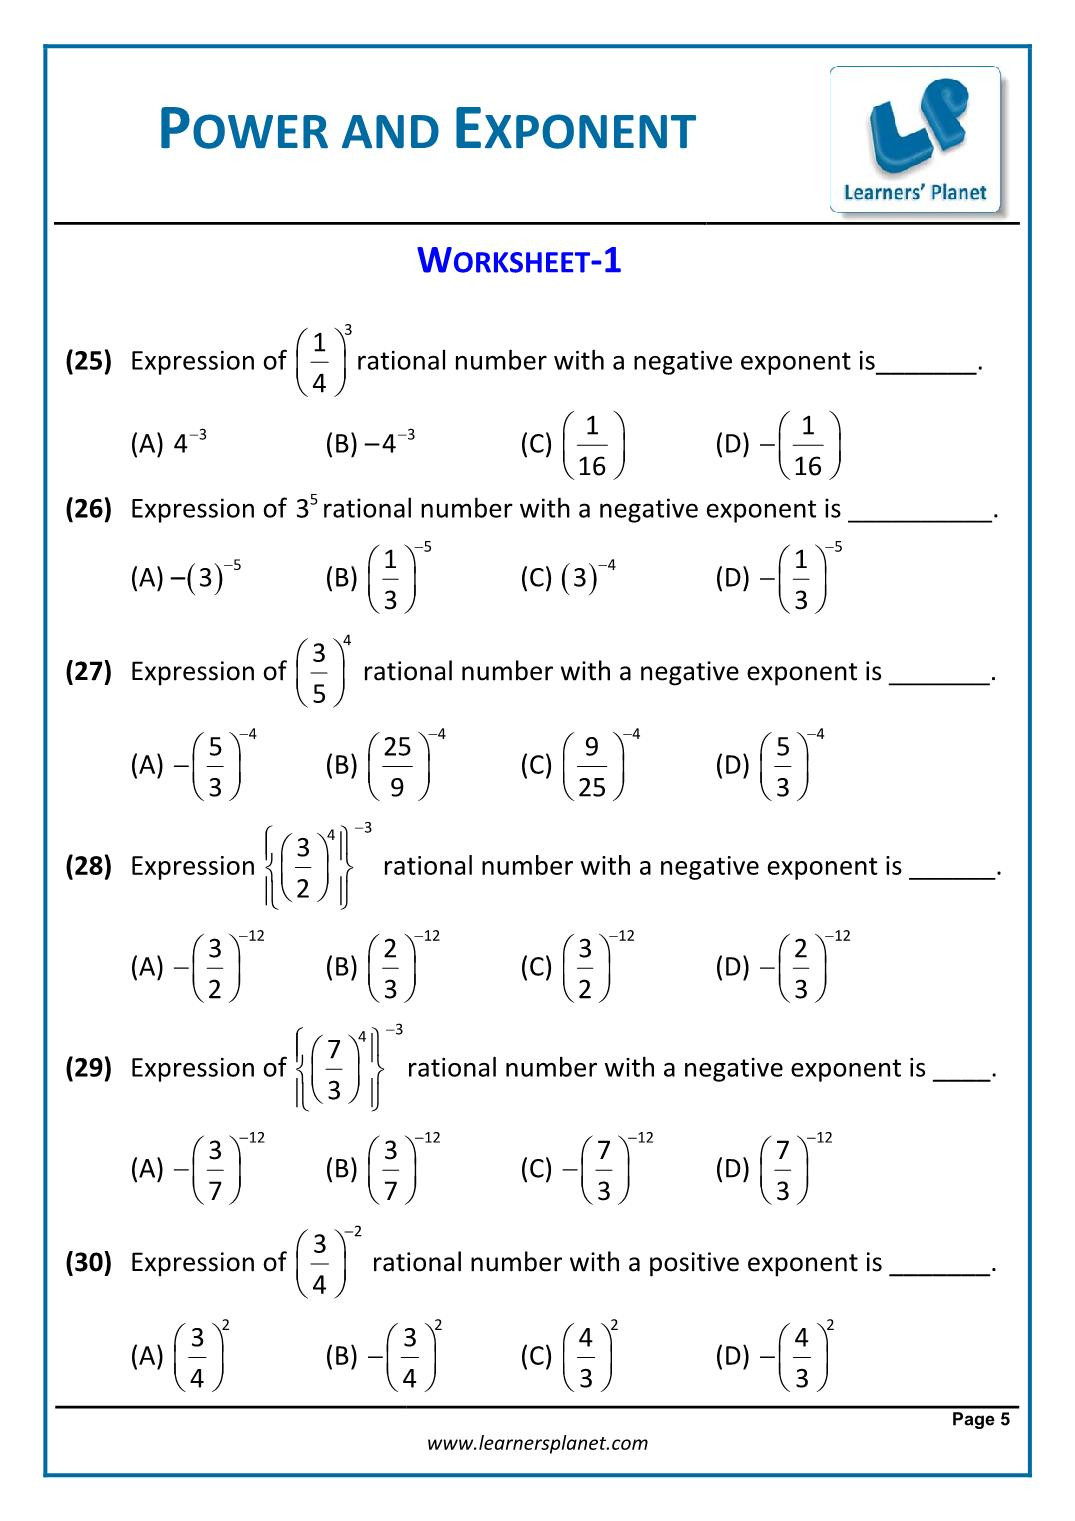 10th Grade Vocabulary Worksheets